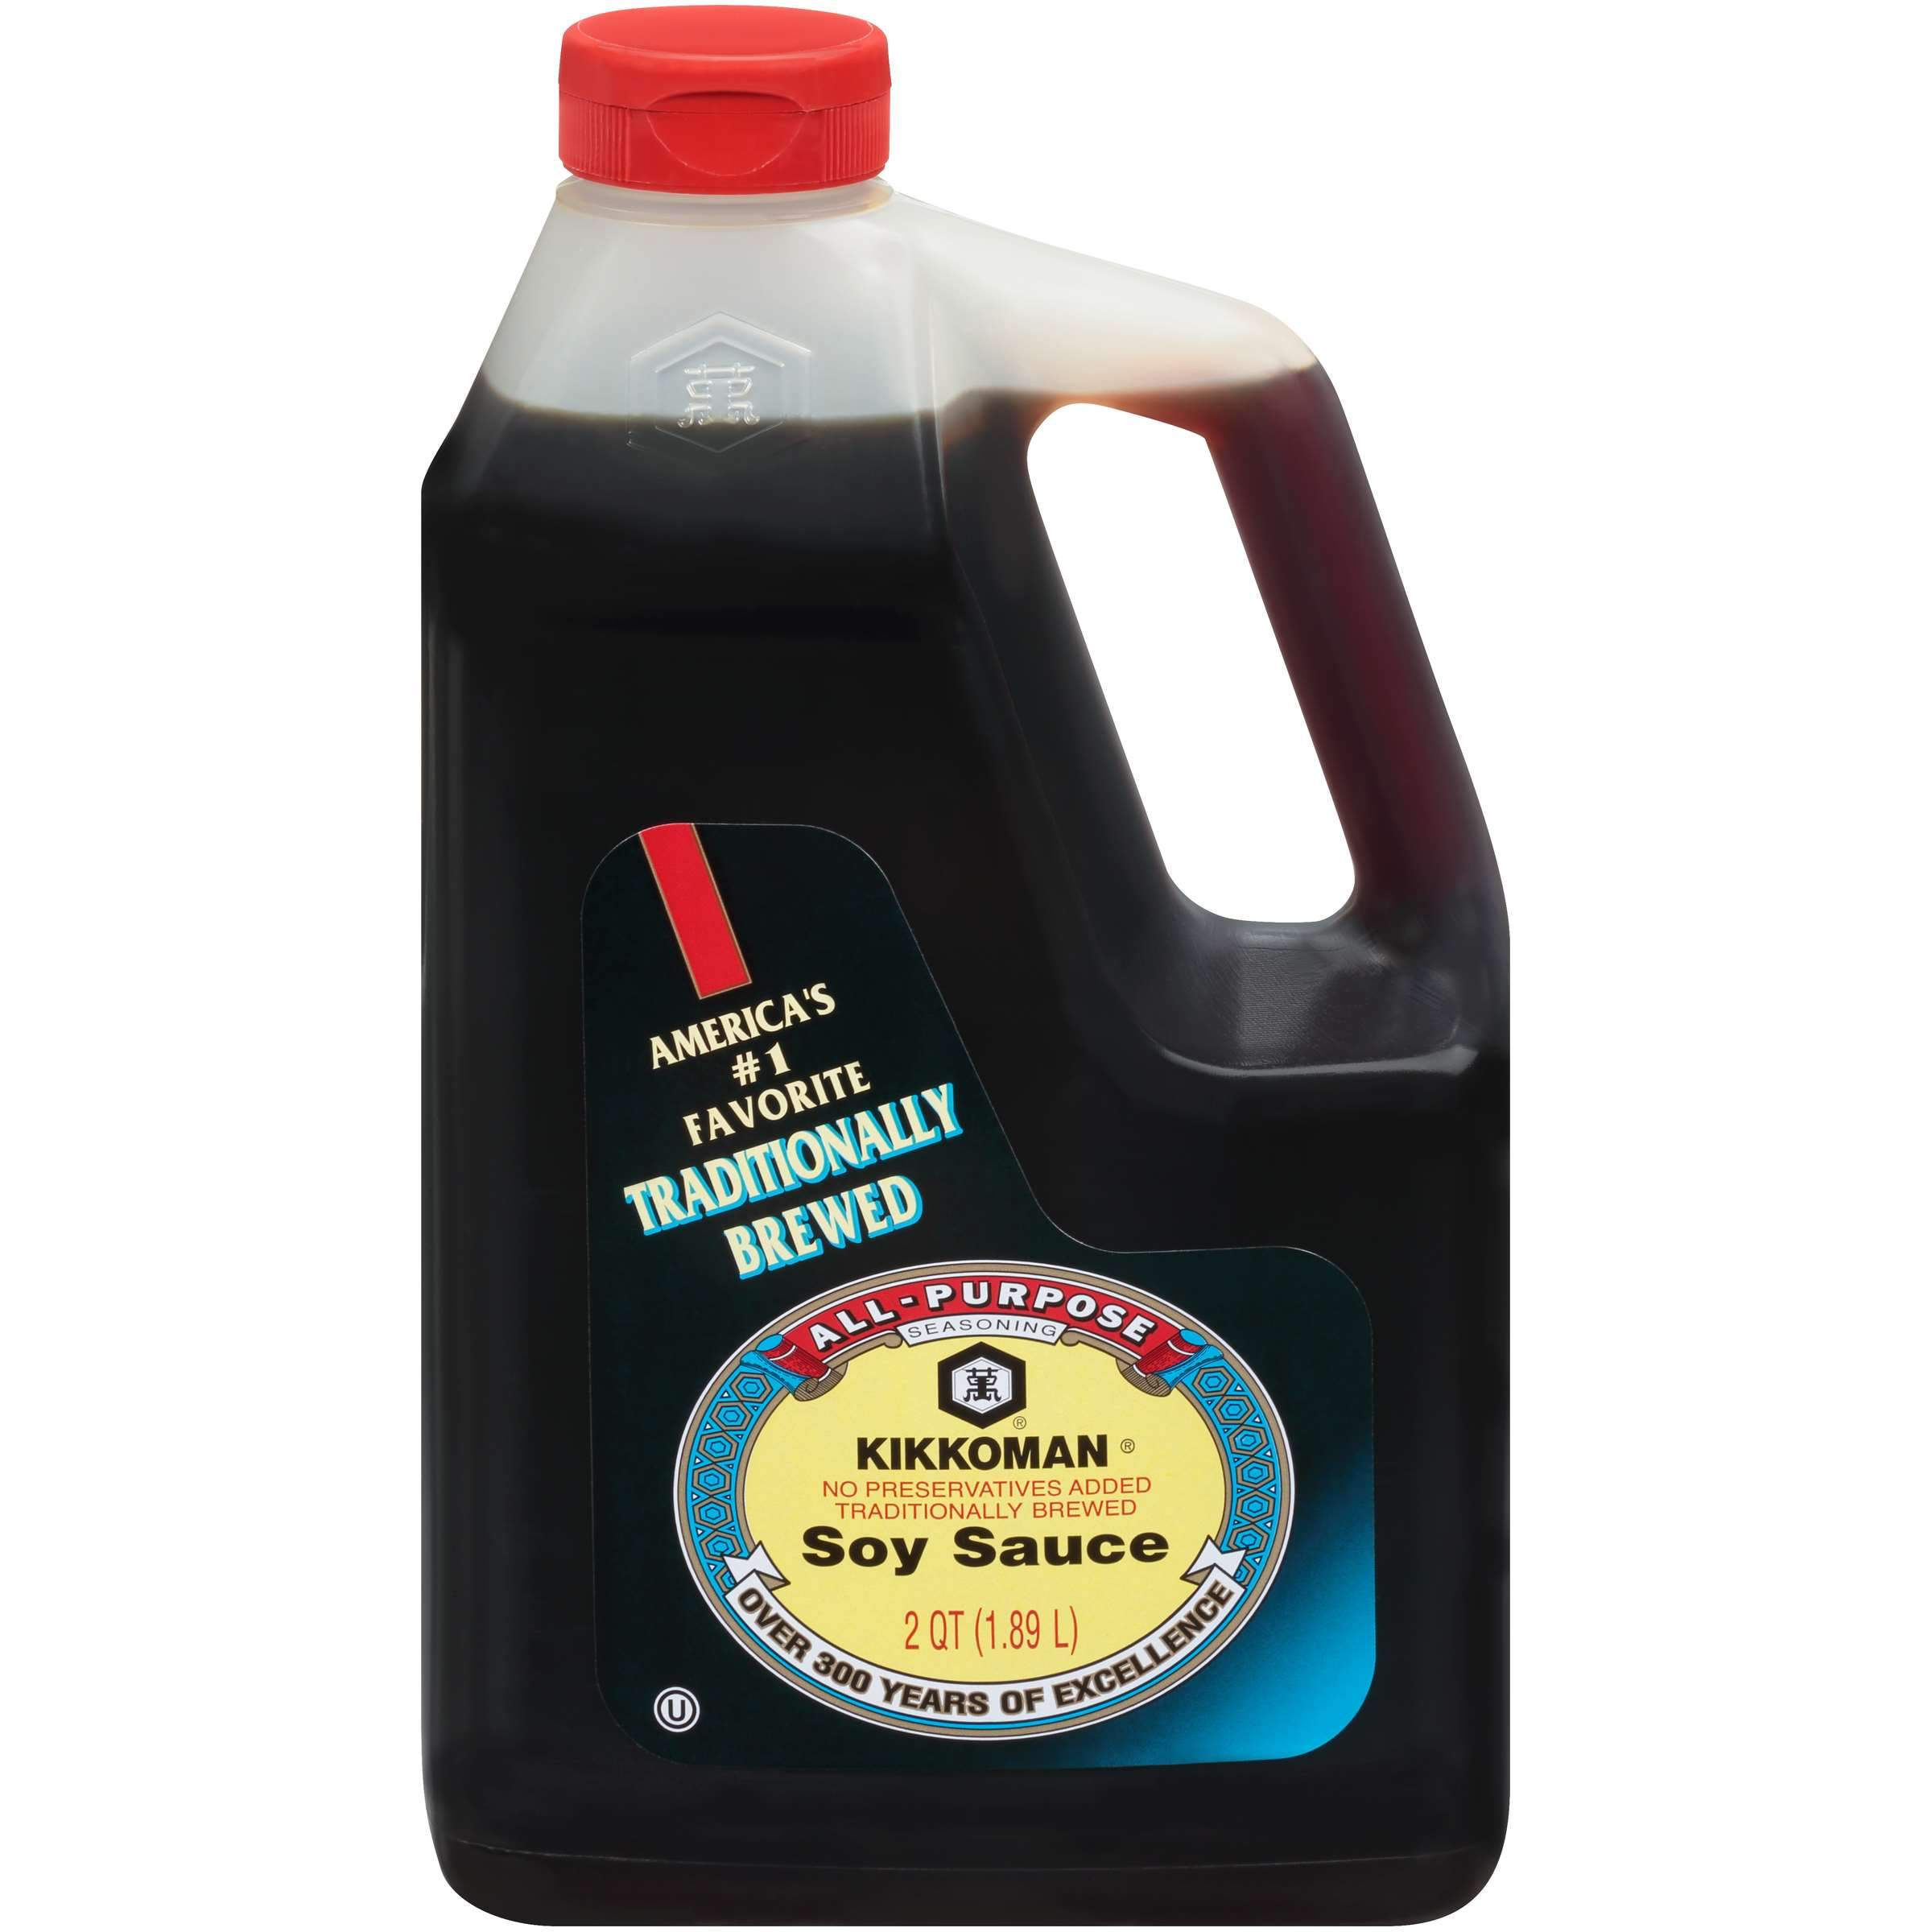 Kikkoman Naturally Brewed Soy Sauce Kikkoman Original 64 Fluid Ounce